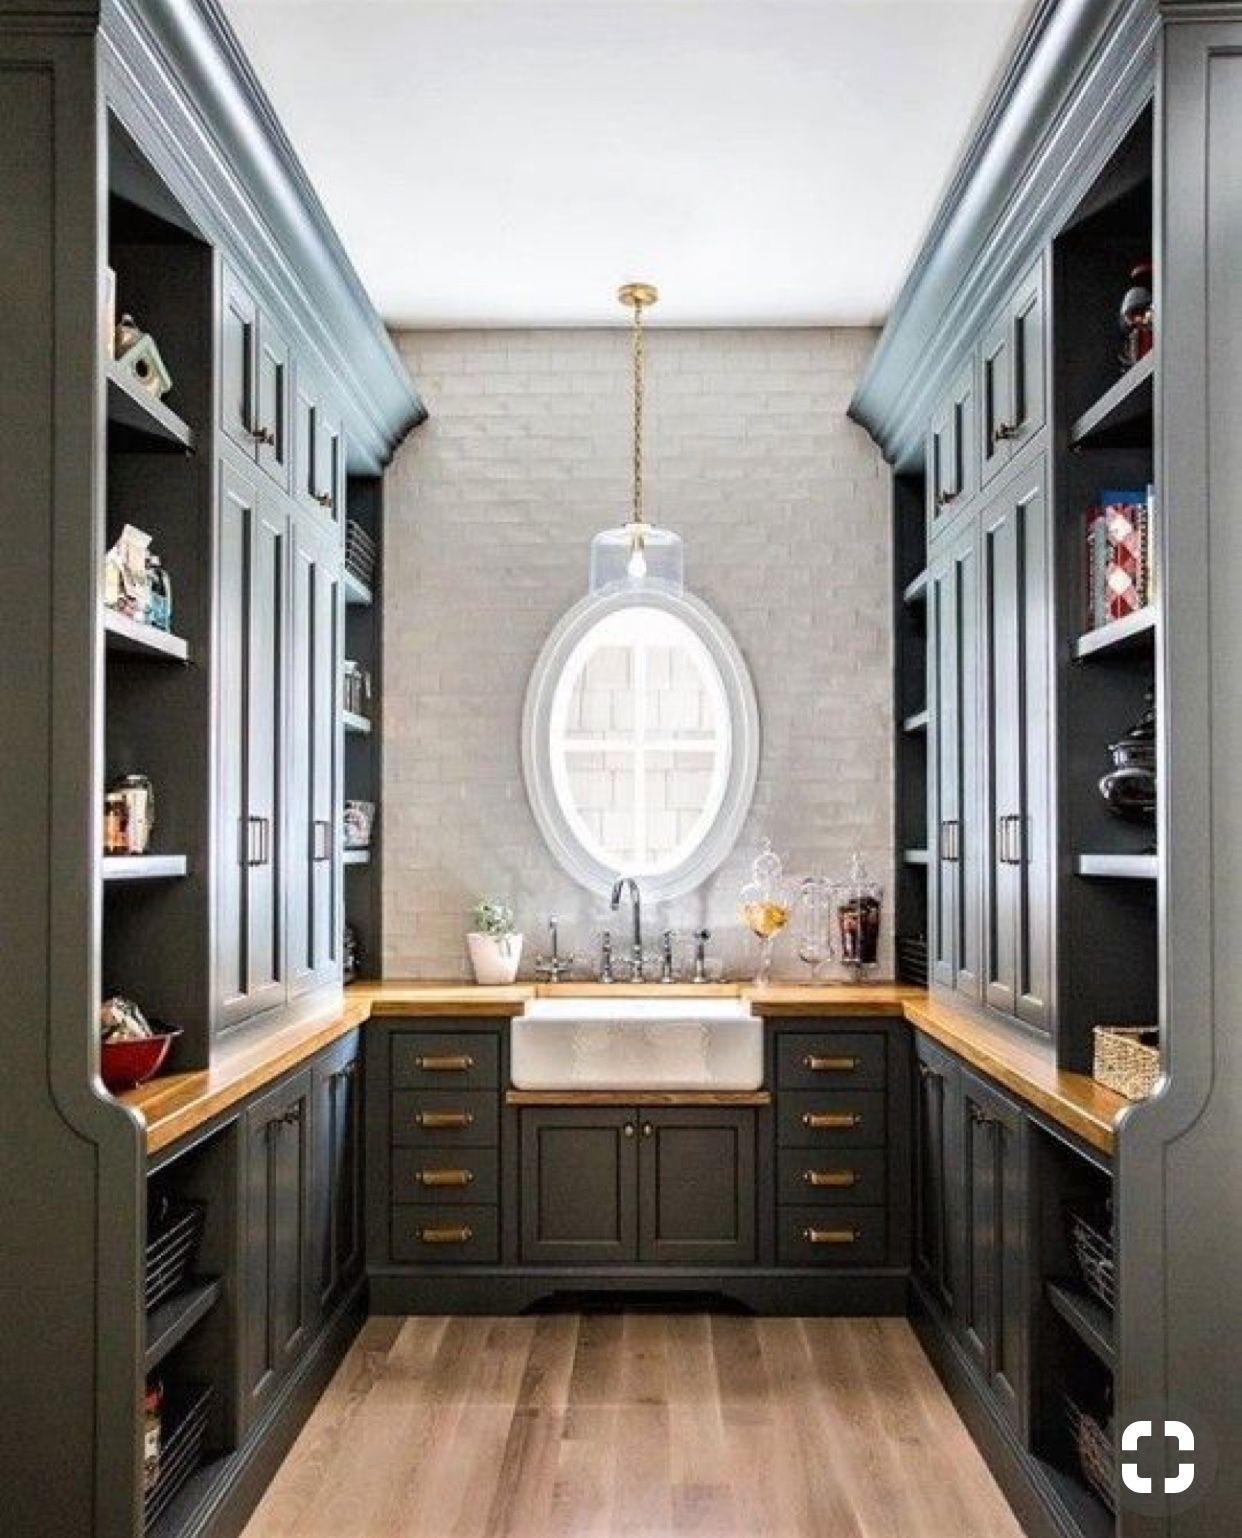 pantry inspiration home butler pantry pantry kitchen rh pinterest com